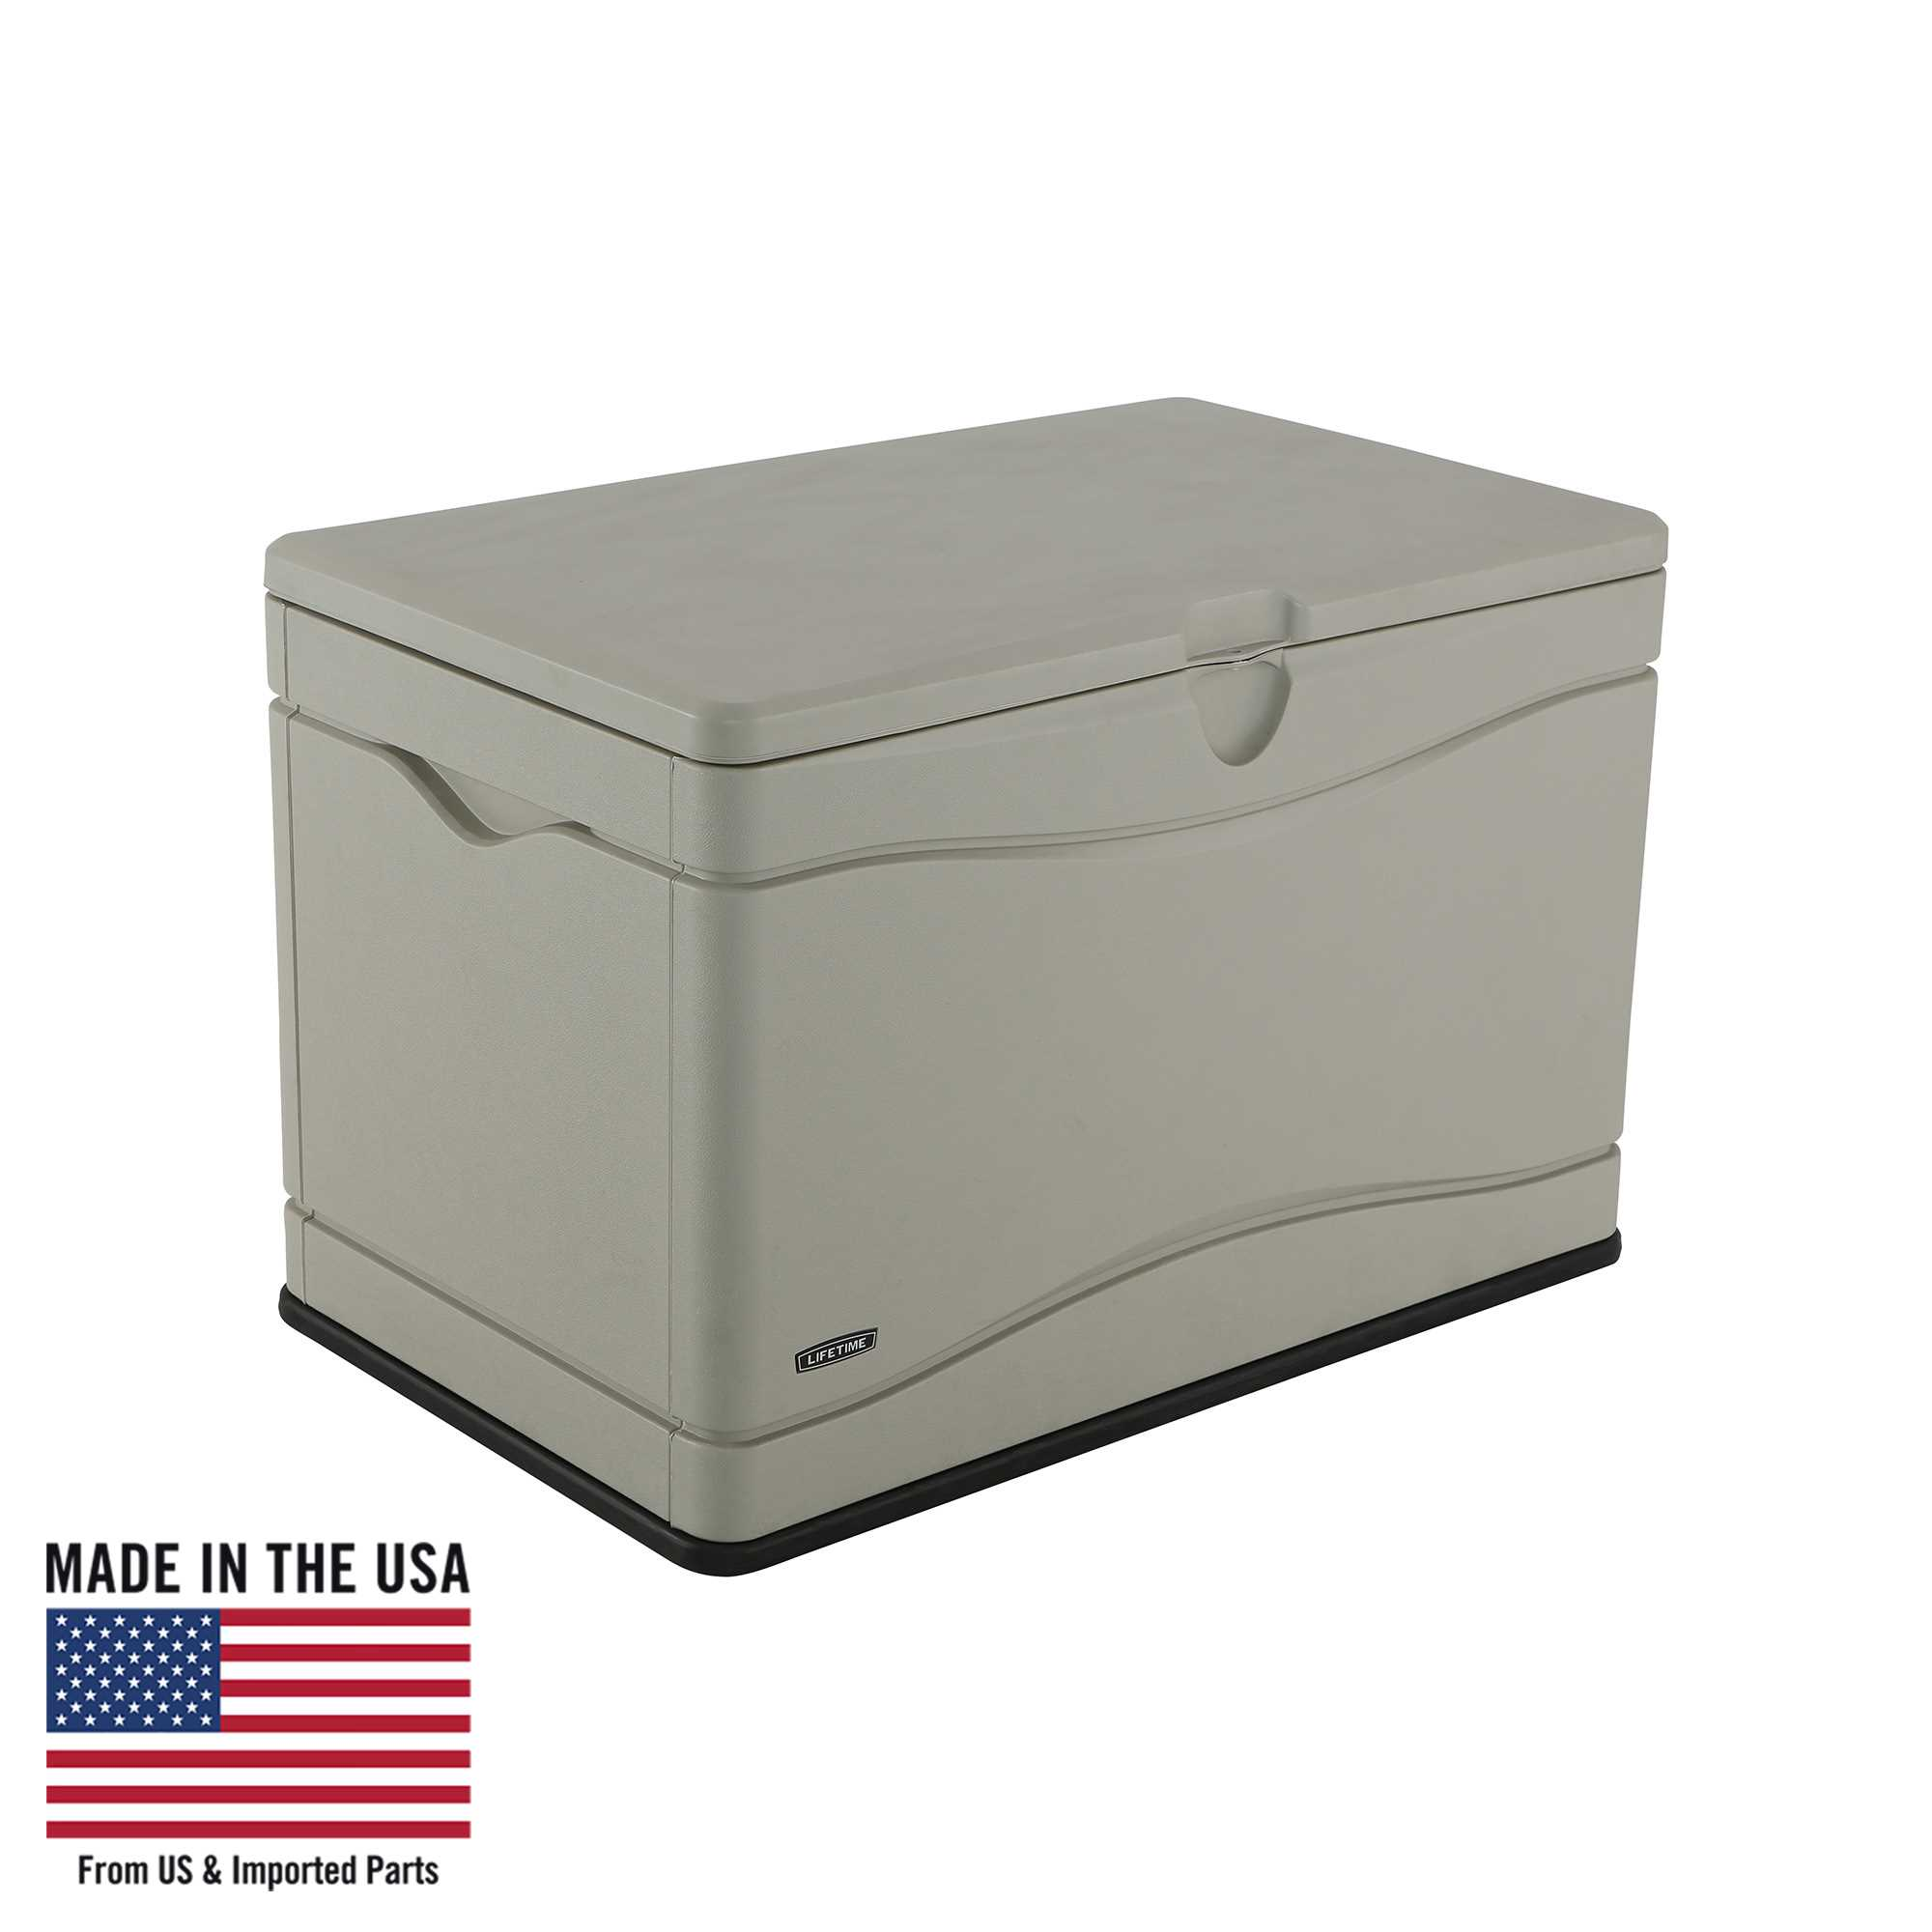 Lifetime Heavy-Duty Outdoor Storage Deck Box (80 Gallon), 60059